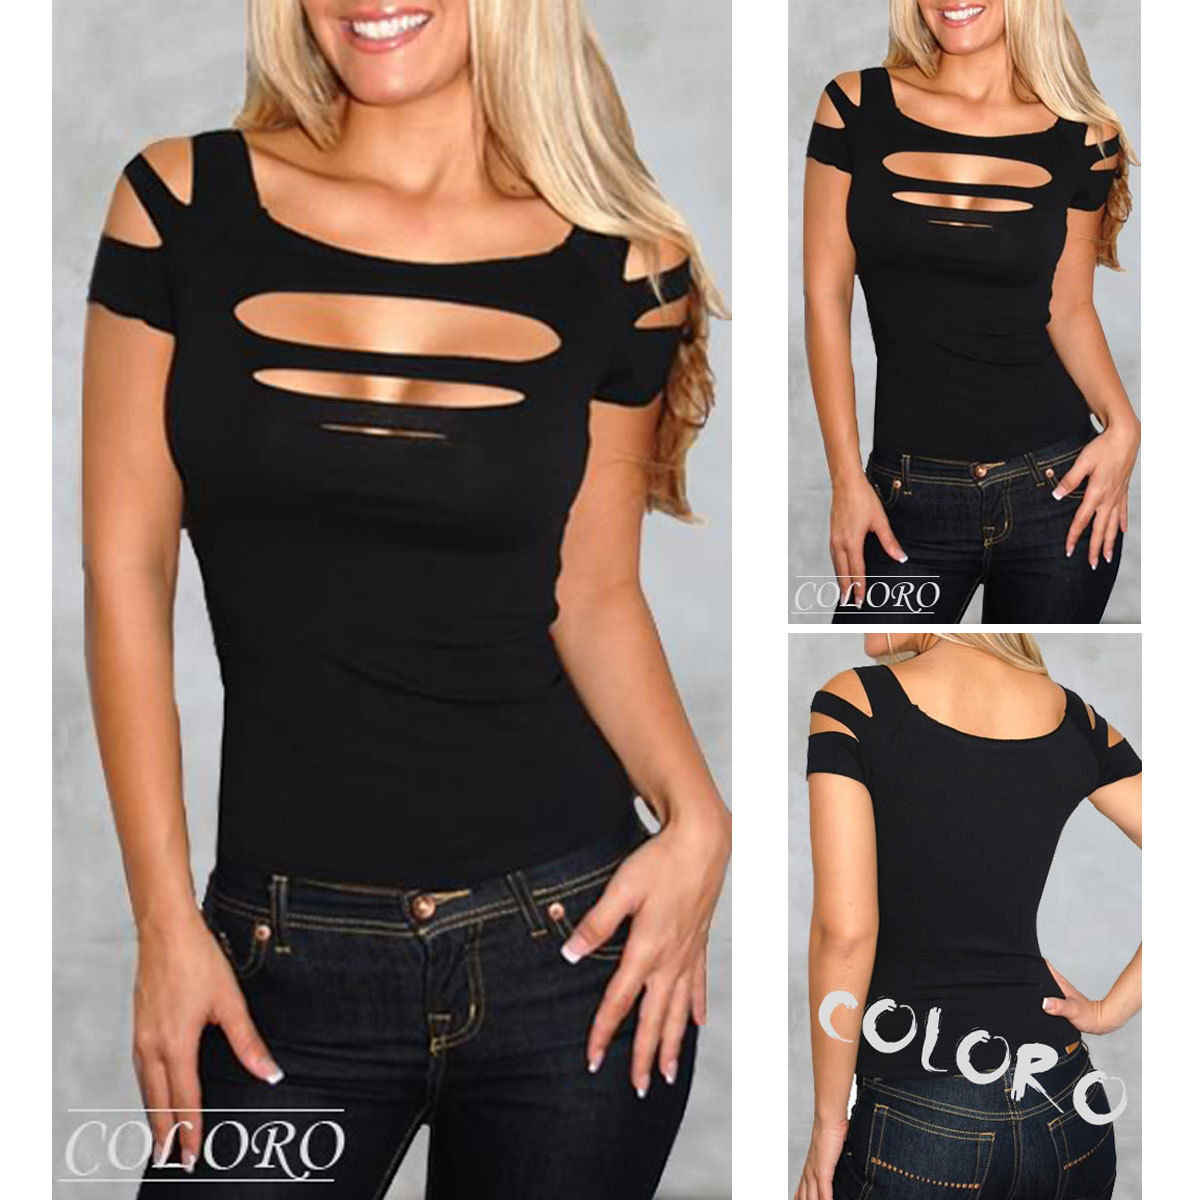 Gogoboi High Quality Fashion Ladies Womans Sexy Ripped Slashed Black Tight  T Shirt Top Clubwear Cut f3afa7061